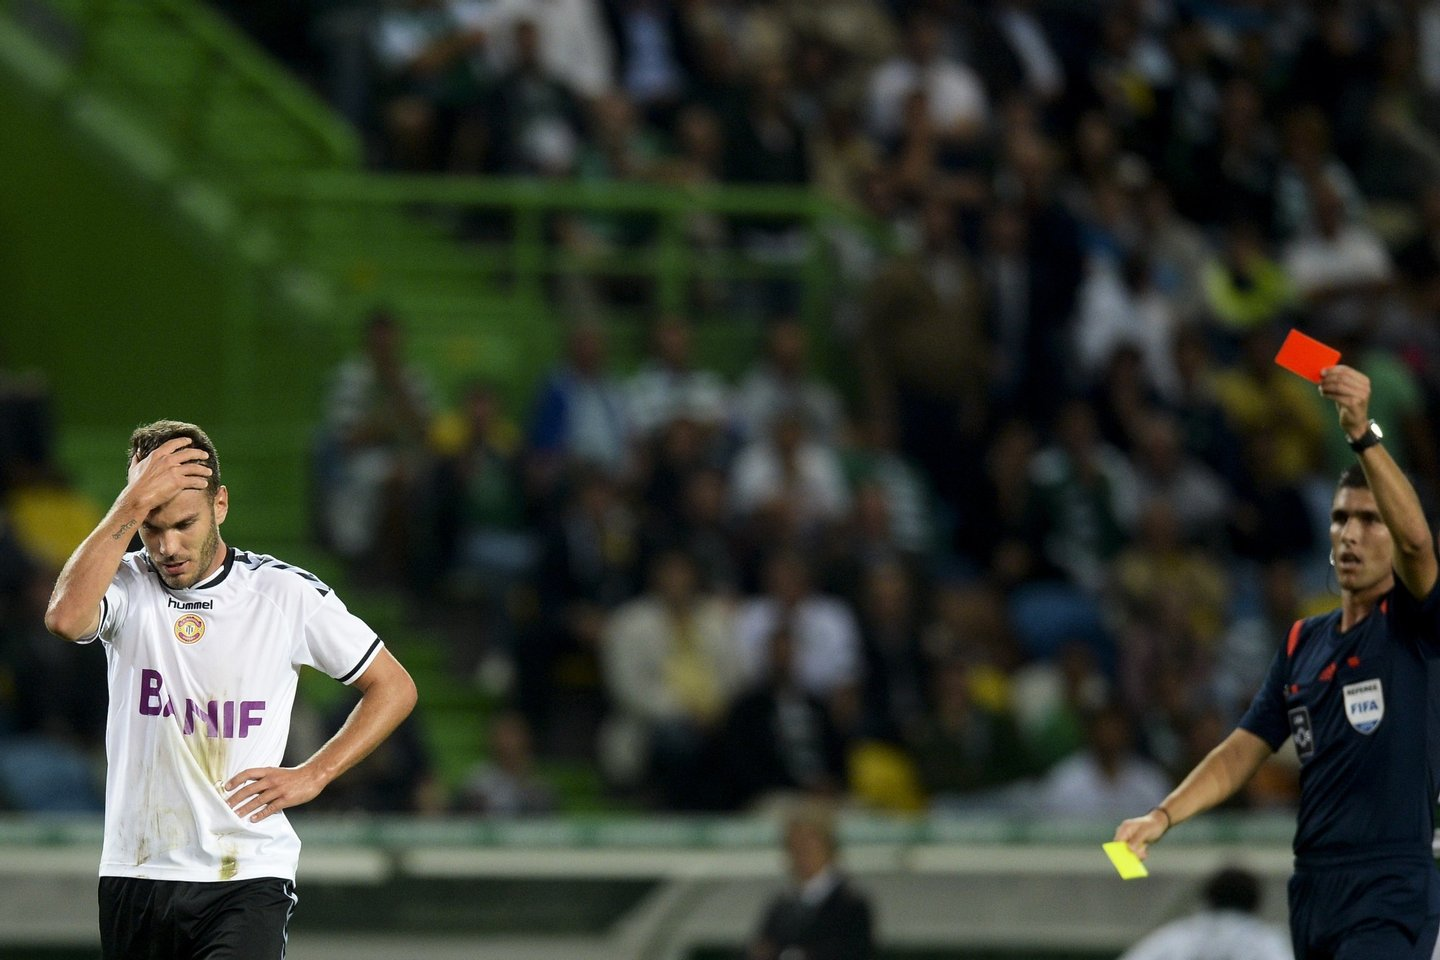 Nacional's defender Nuno Sequeira (L) is shown a red card by referee Fabio Verissimo (R) during the Portuguese Liga football match Sporting CP vs CD Nacional at the Alvalade stadium in Lisbon on September 21, 2015. AFP PHOTO/ PATRICIA DE MELO MOREIRA (Photo credit should read PATRICIA DE MELO MOREIRA/AFP/Getty Images)